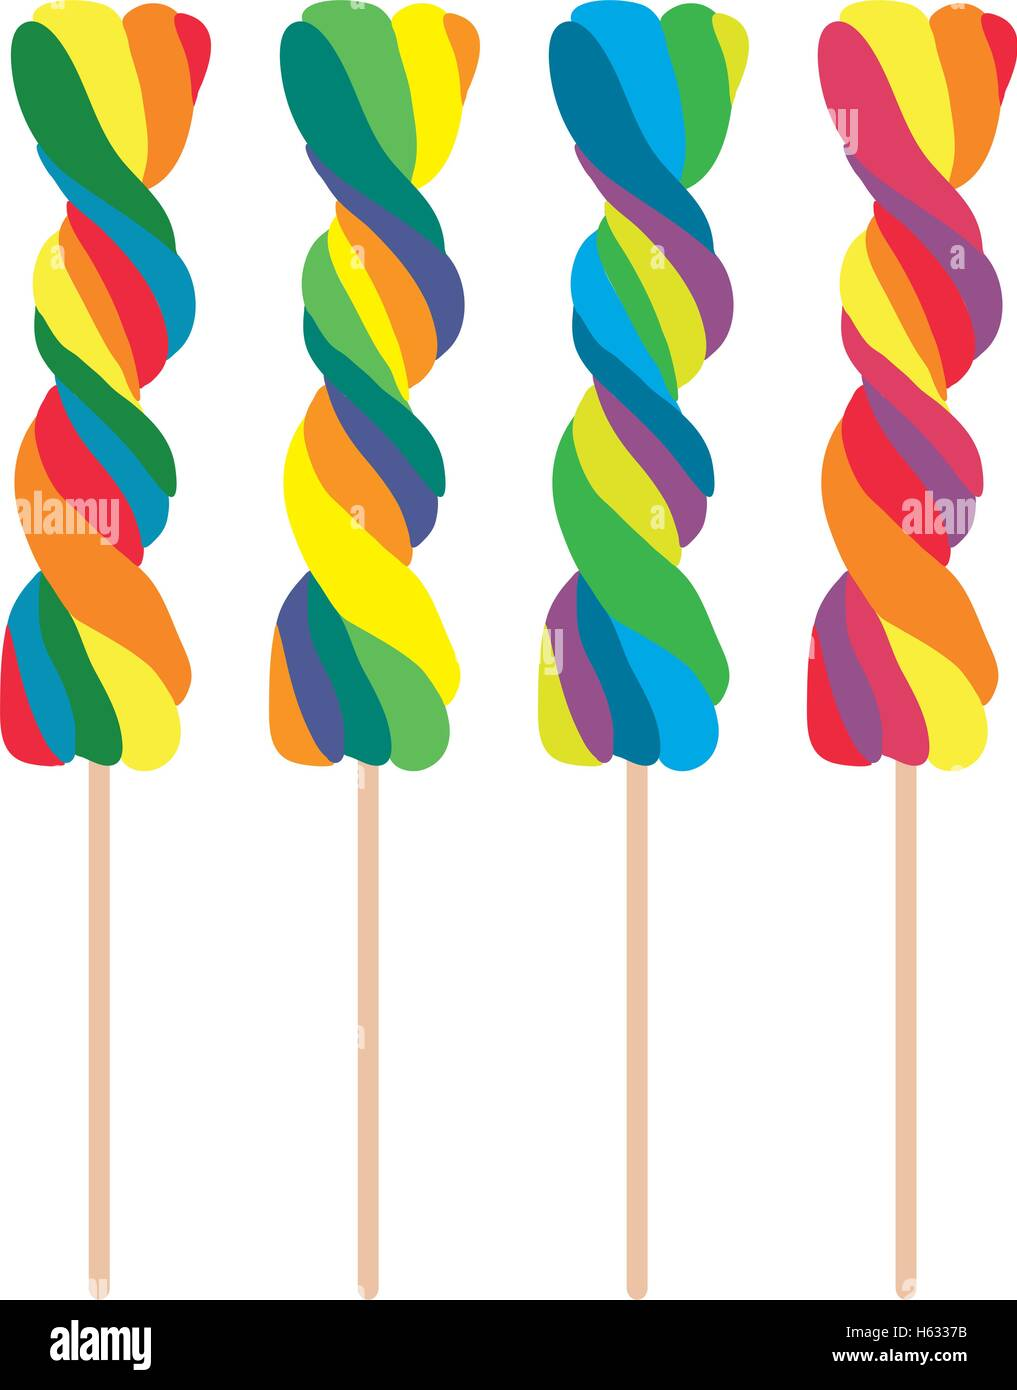 vector set of colorful twisted lollipops - Stock Vector